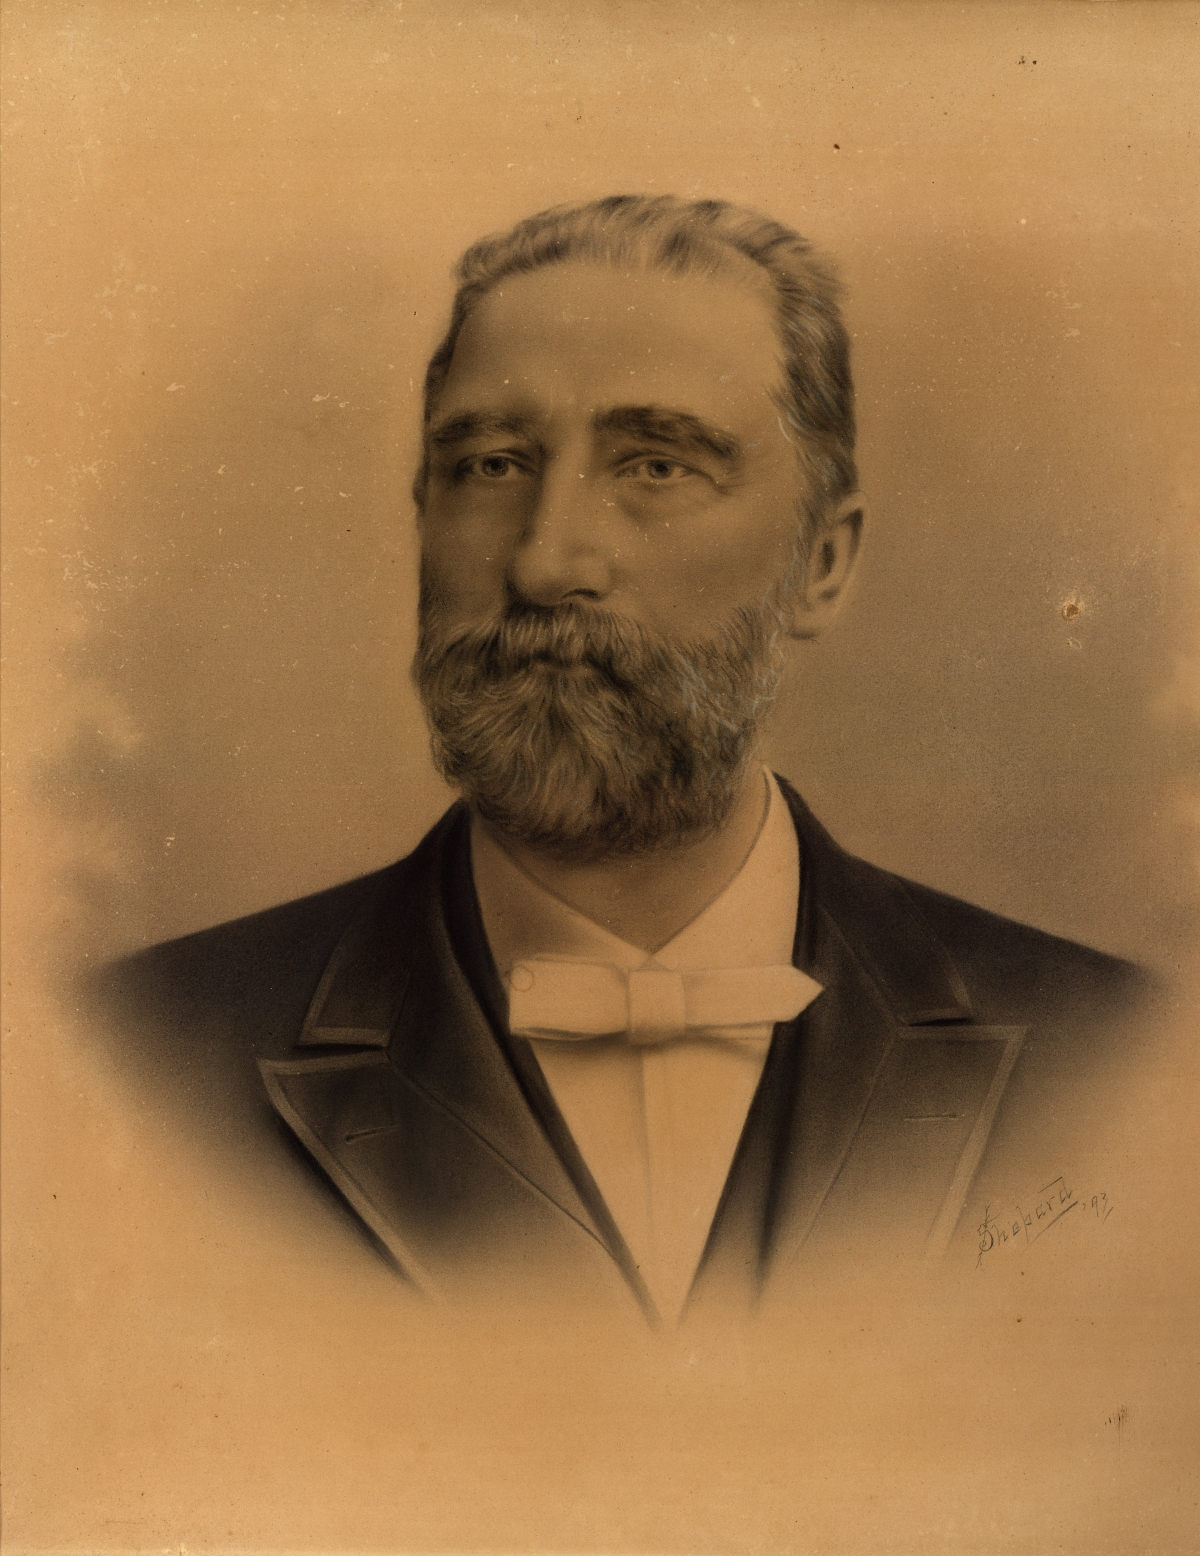 Portrait of Jesse T. Bernard, commissioner to the World's Columbian Exposition from Florida in 1893.